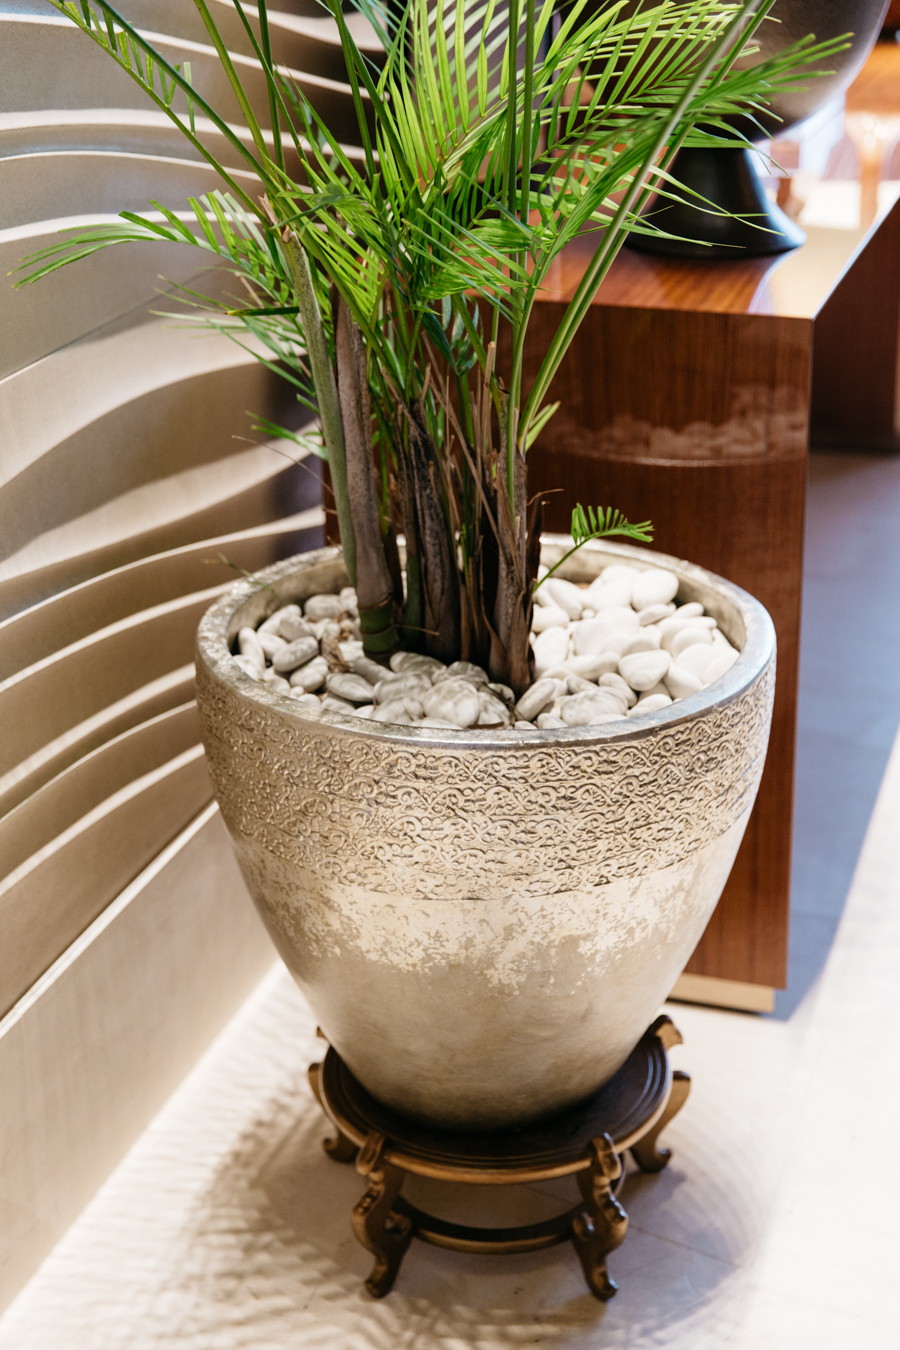 Interior design, silver pot with palm tree.